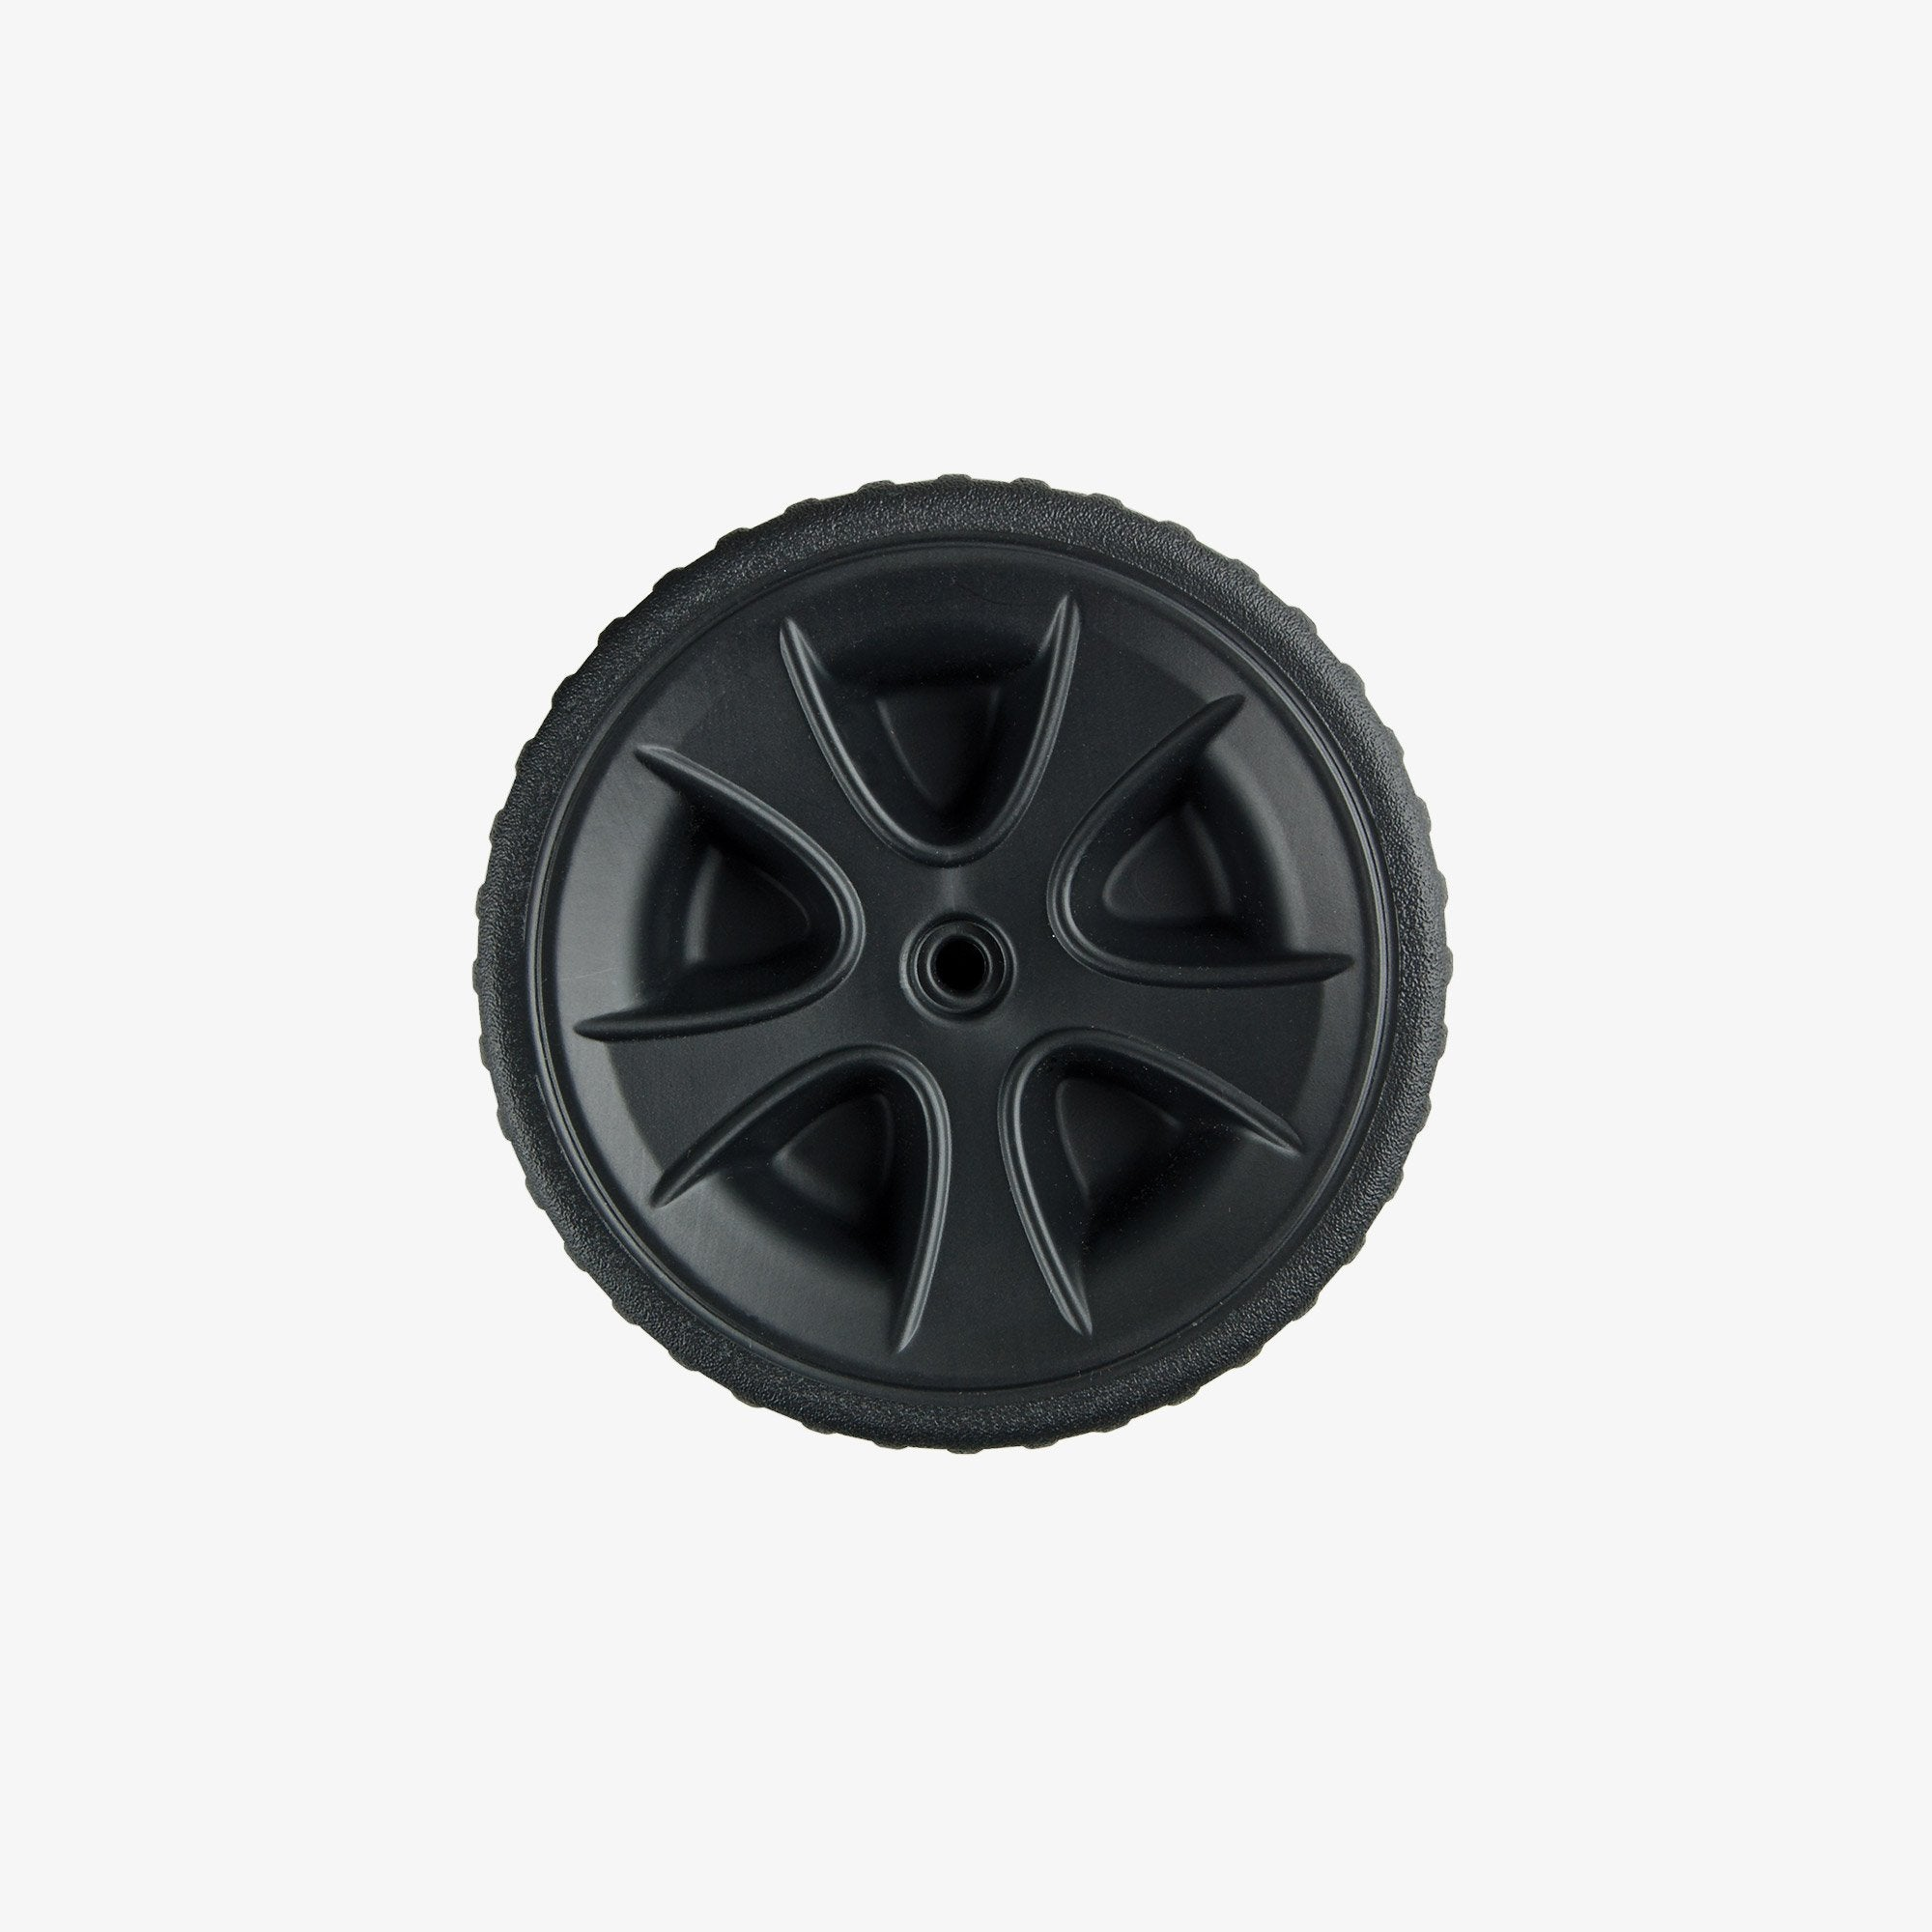 Large View | 4.5-Inch Plastic Cooler Wheels in Black at Igloo Replacement Parts